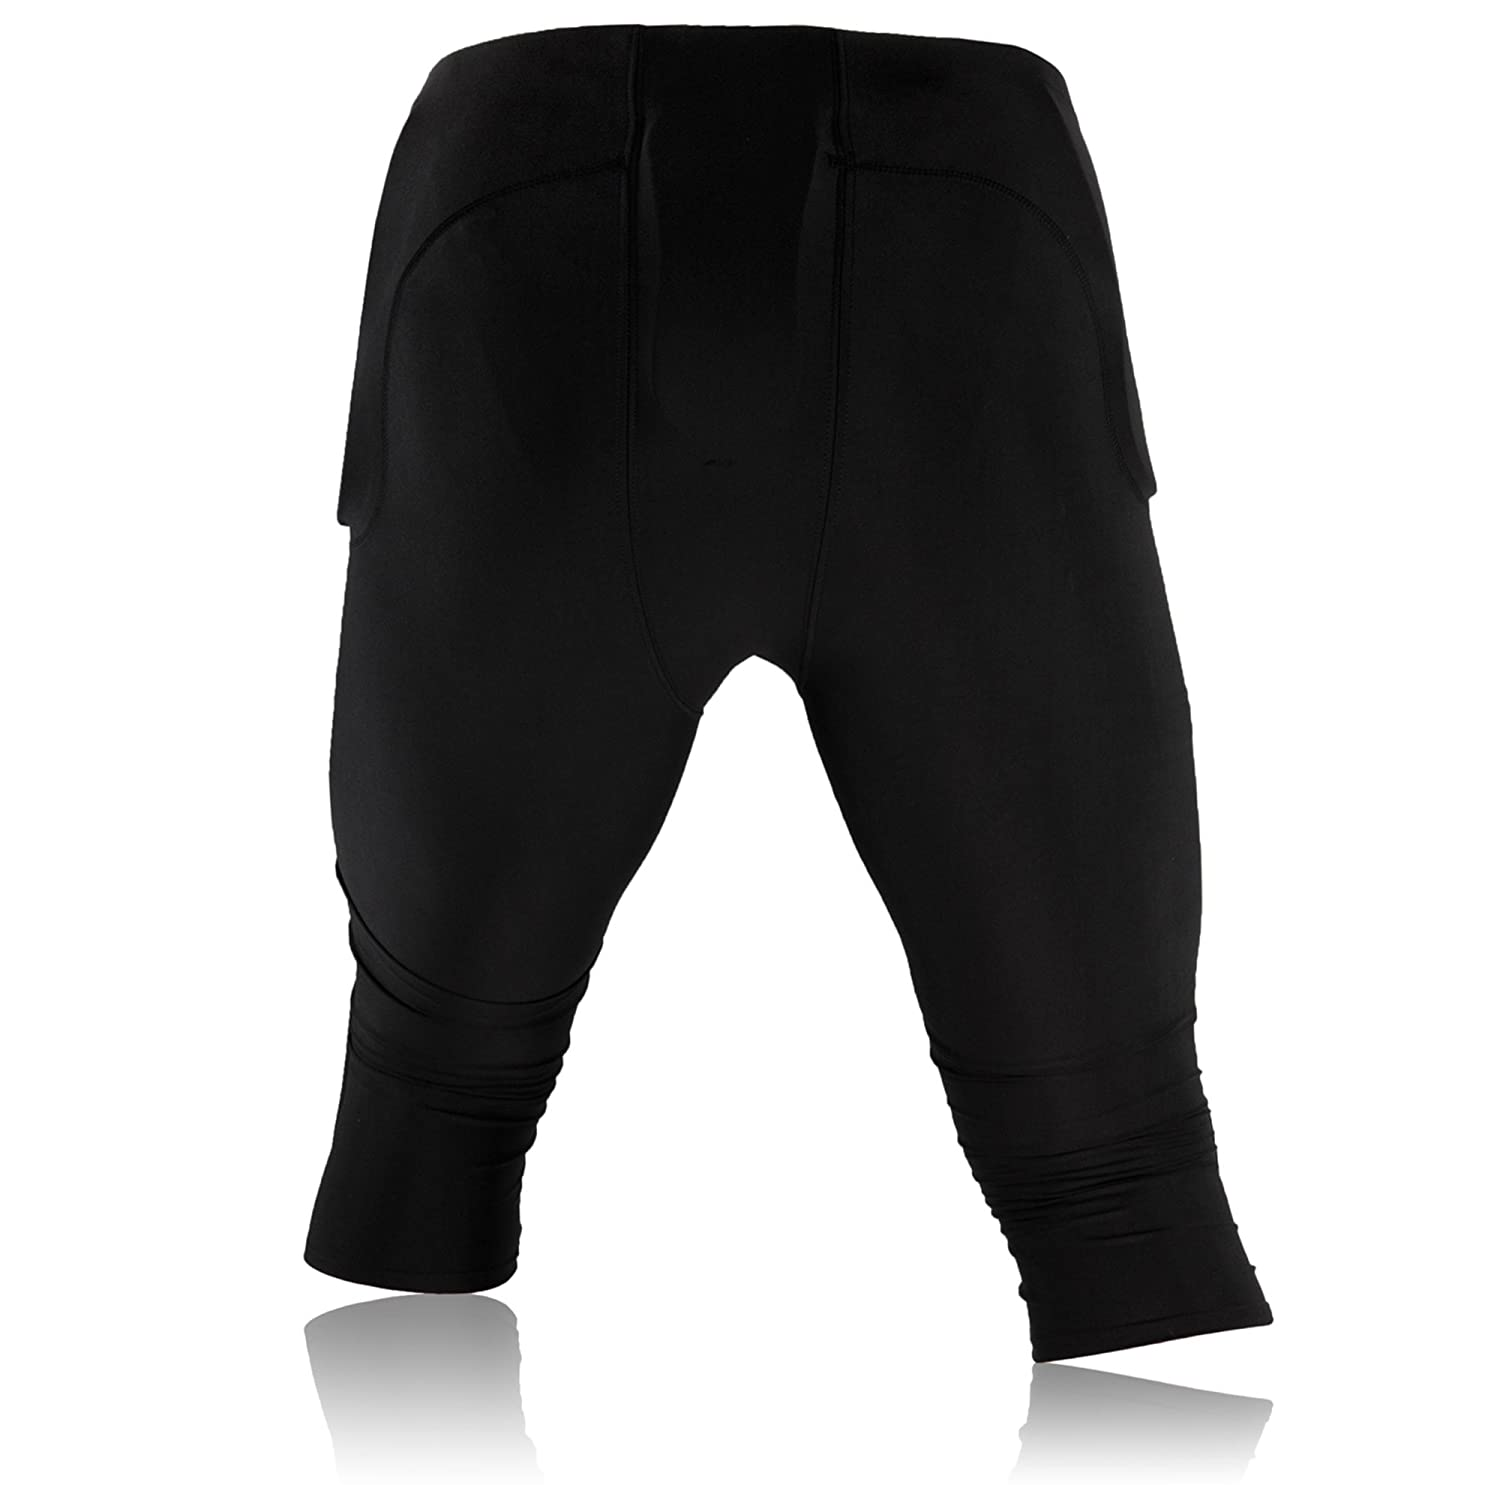 all-in-one stretch with integrated 7-pocket pad Full Force American football